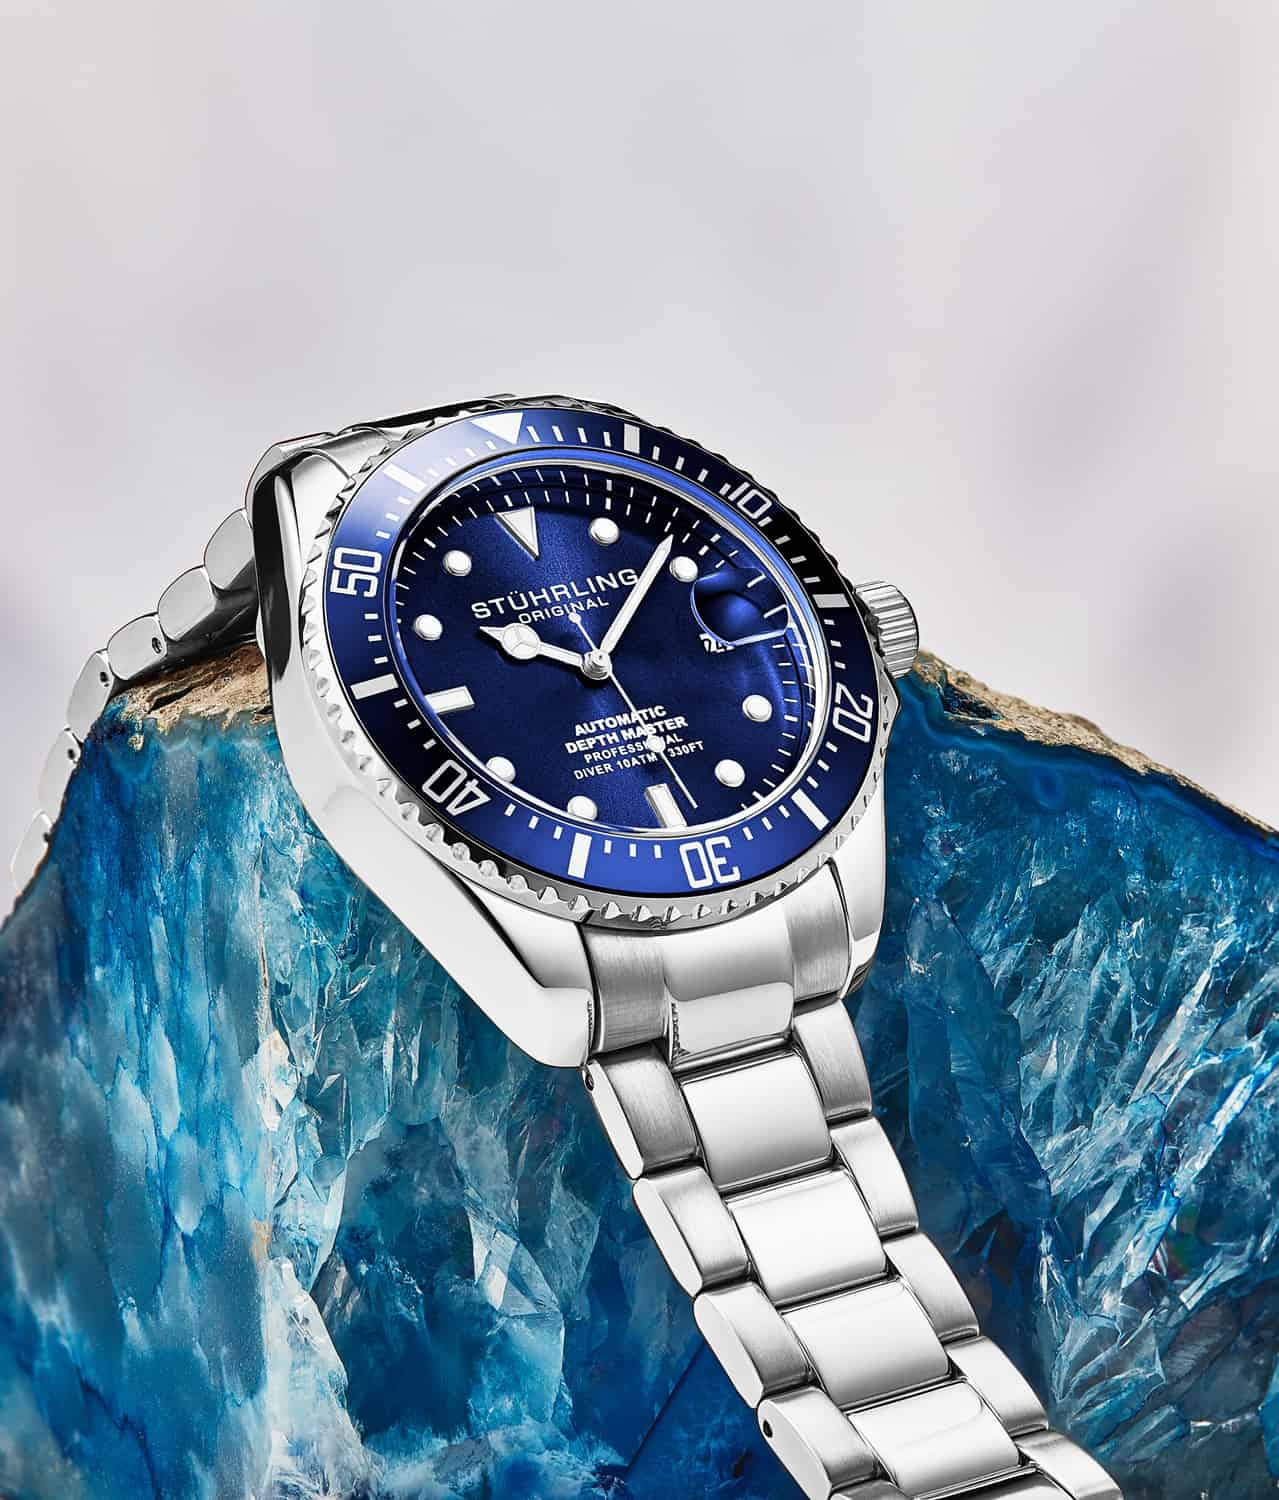 Regatta 792 Automatic 42mm Diver